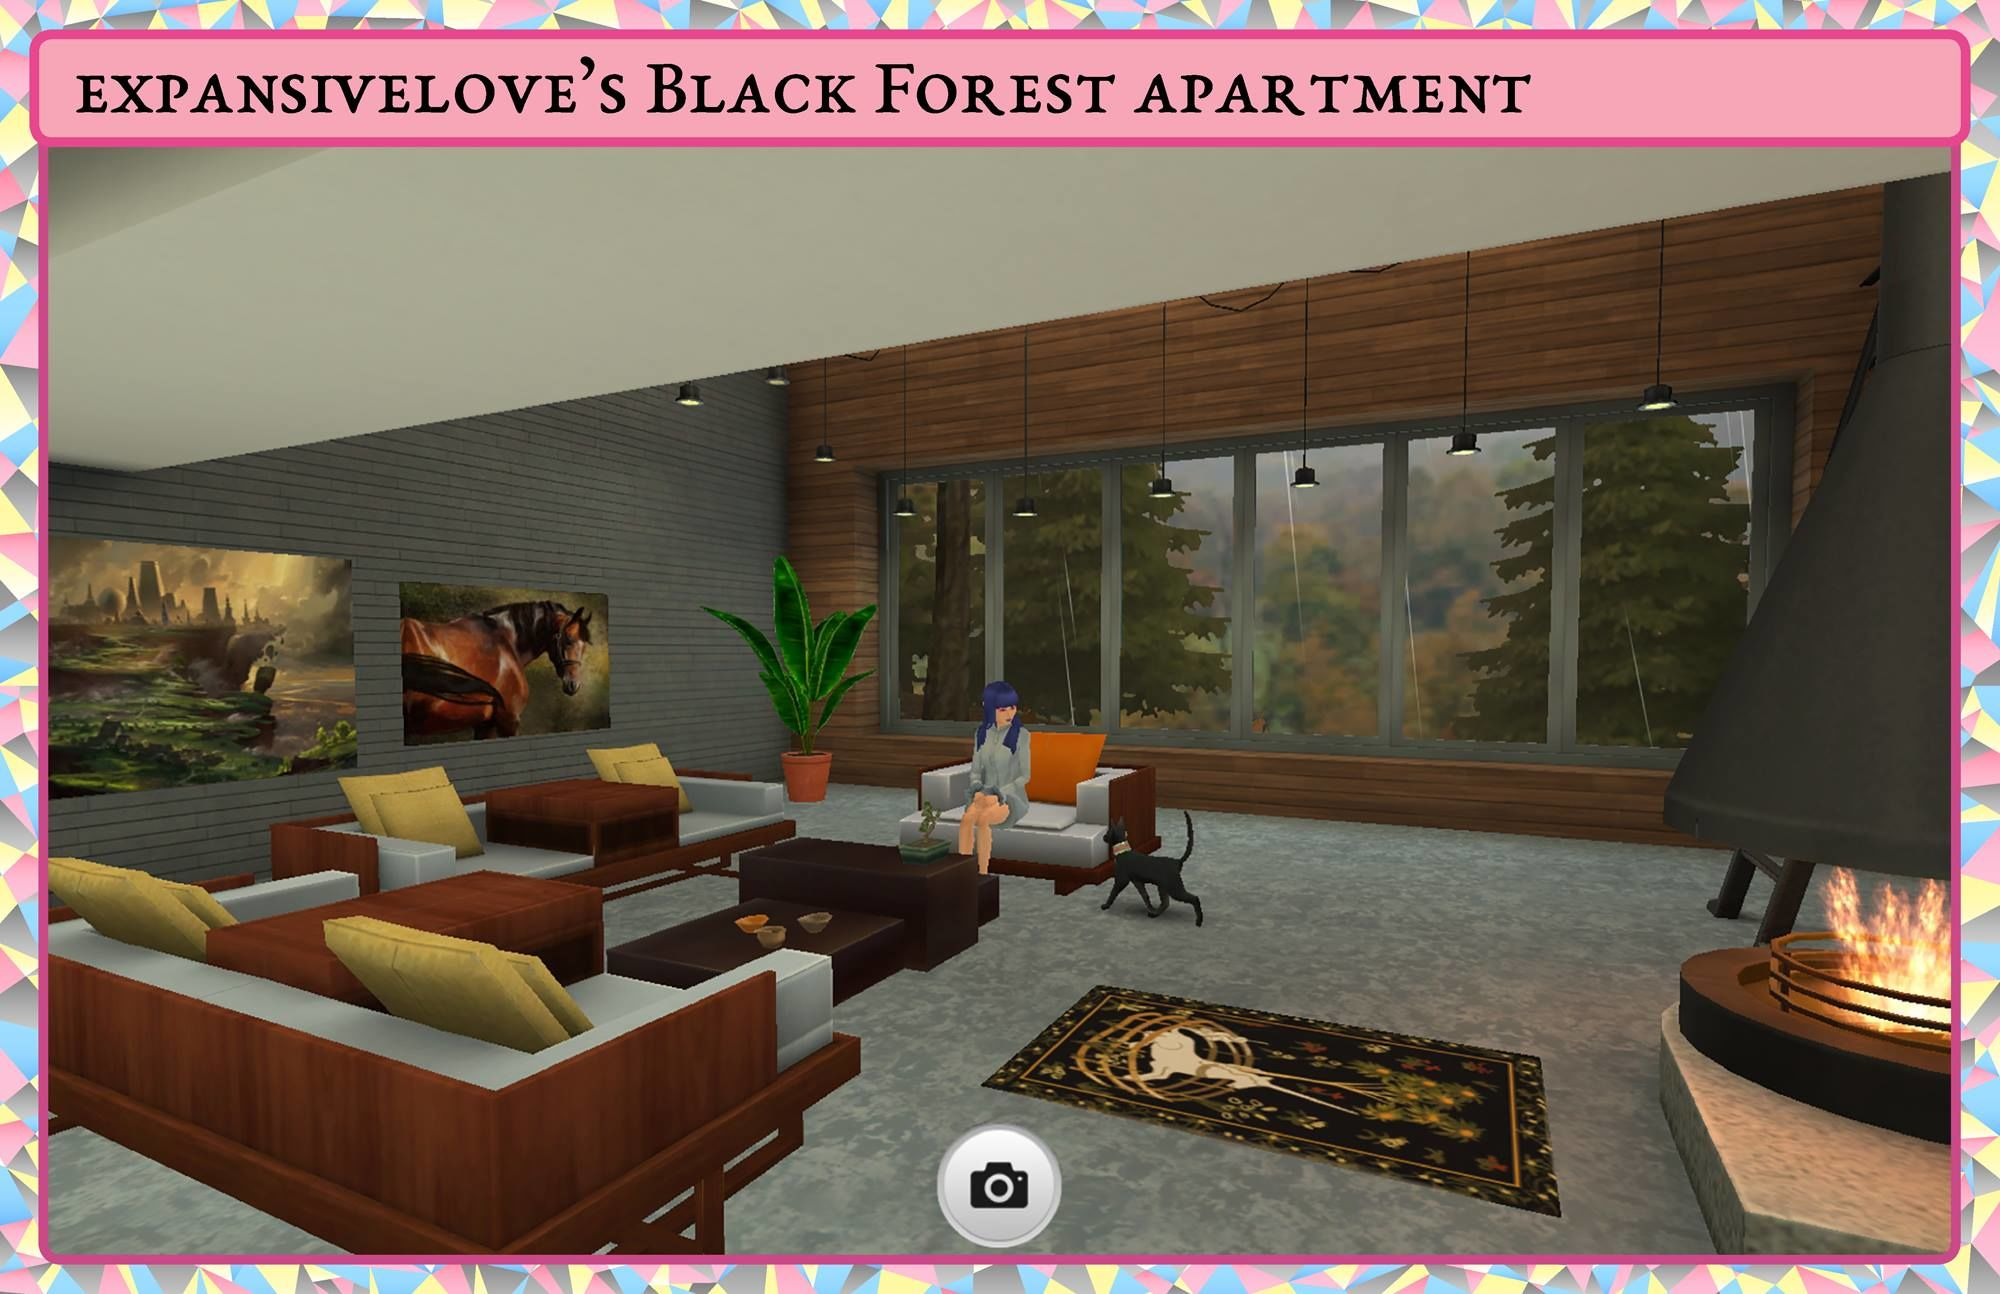 expansivelove's Black Forest apartment